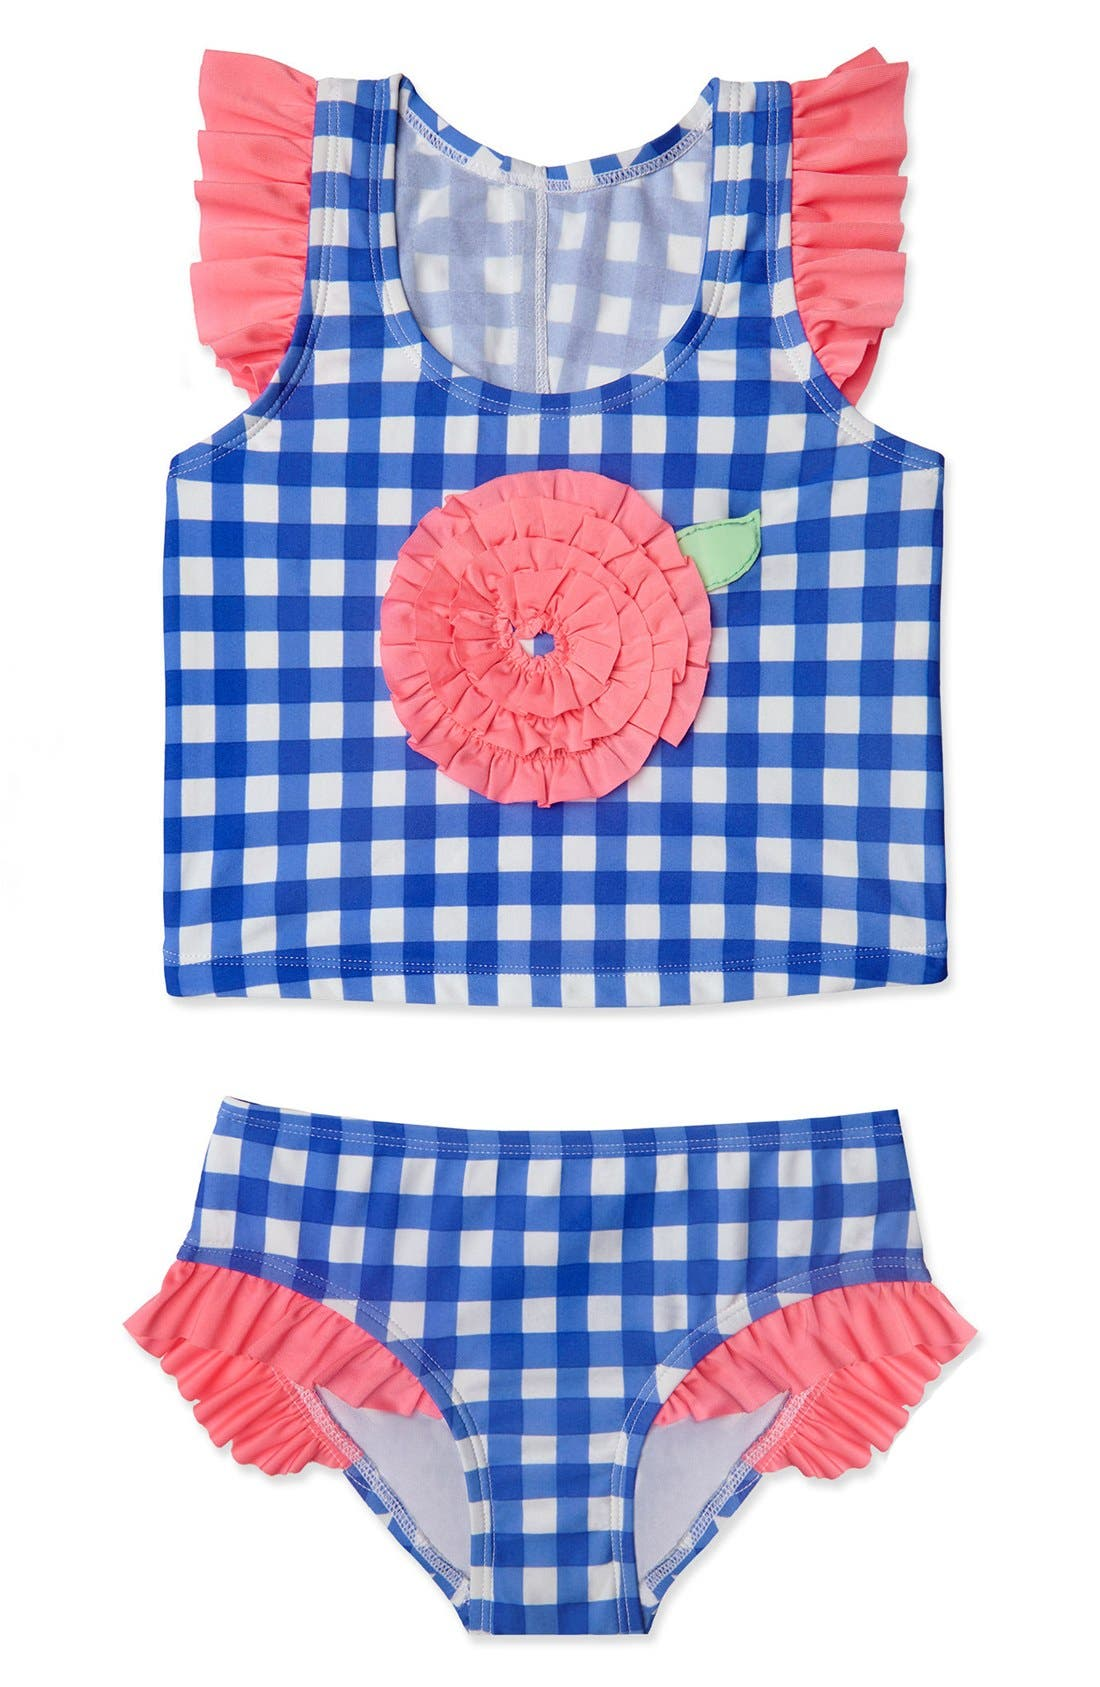 Main Image - Hula Star Gingham Two-Piece Swimsuit (Toddler Girls & Little Girls)